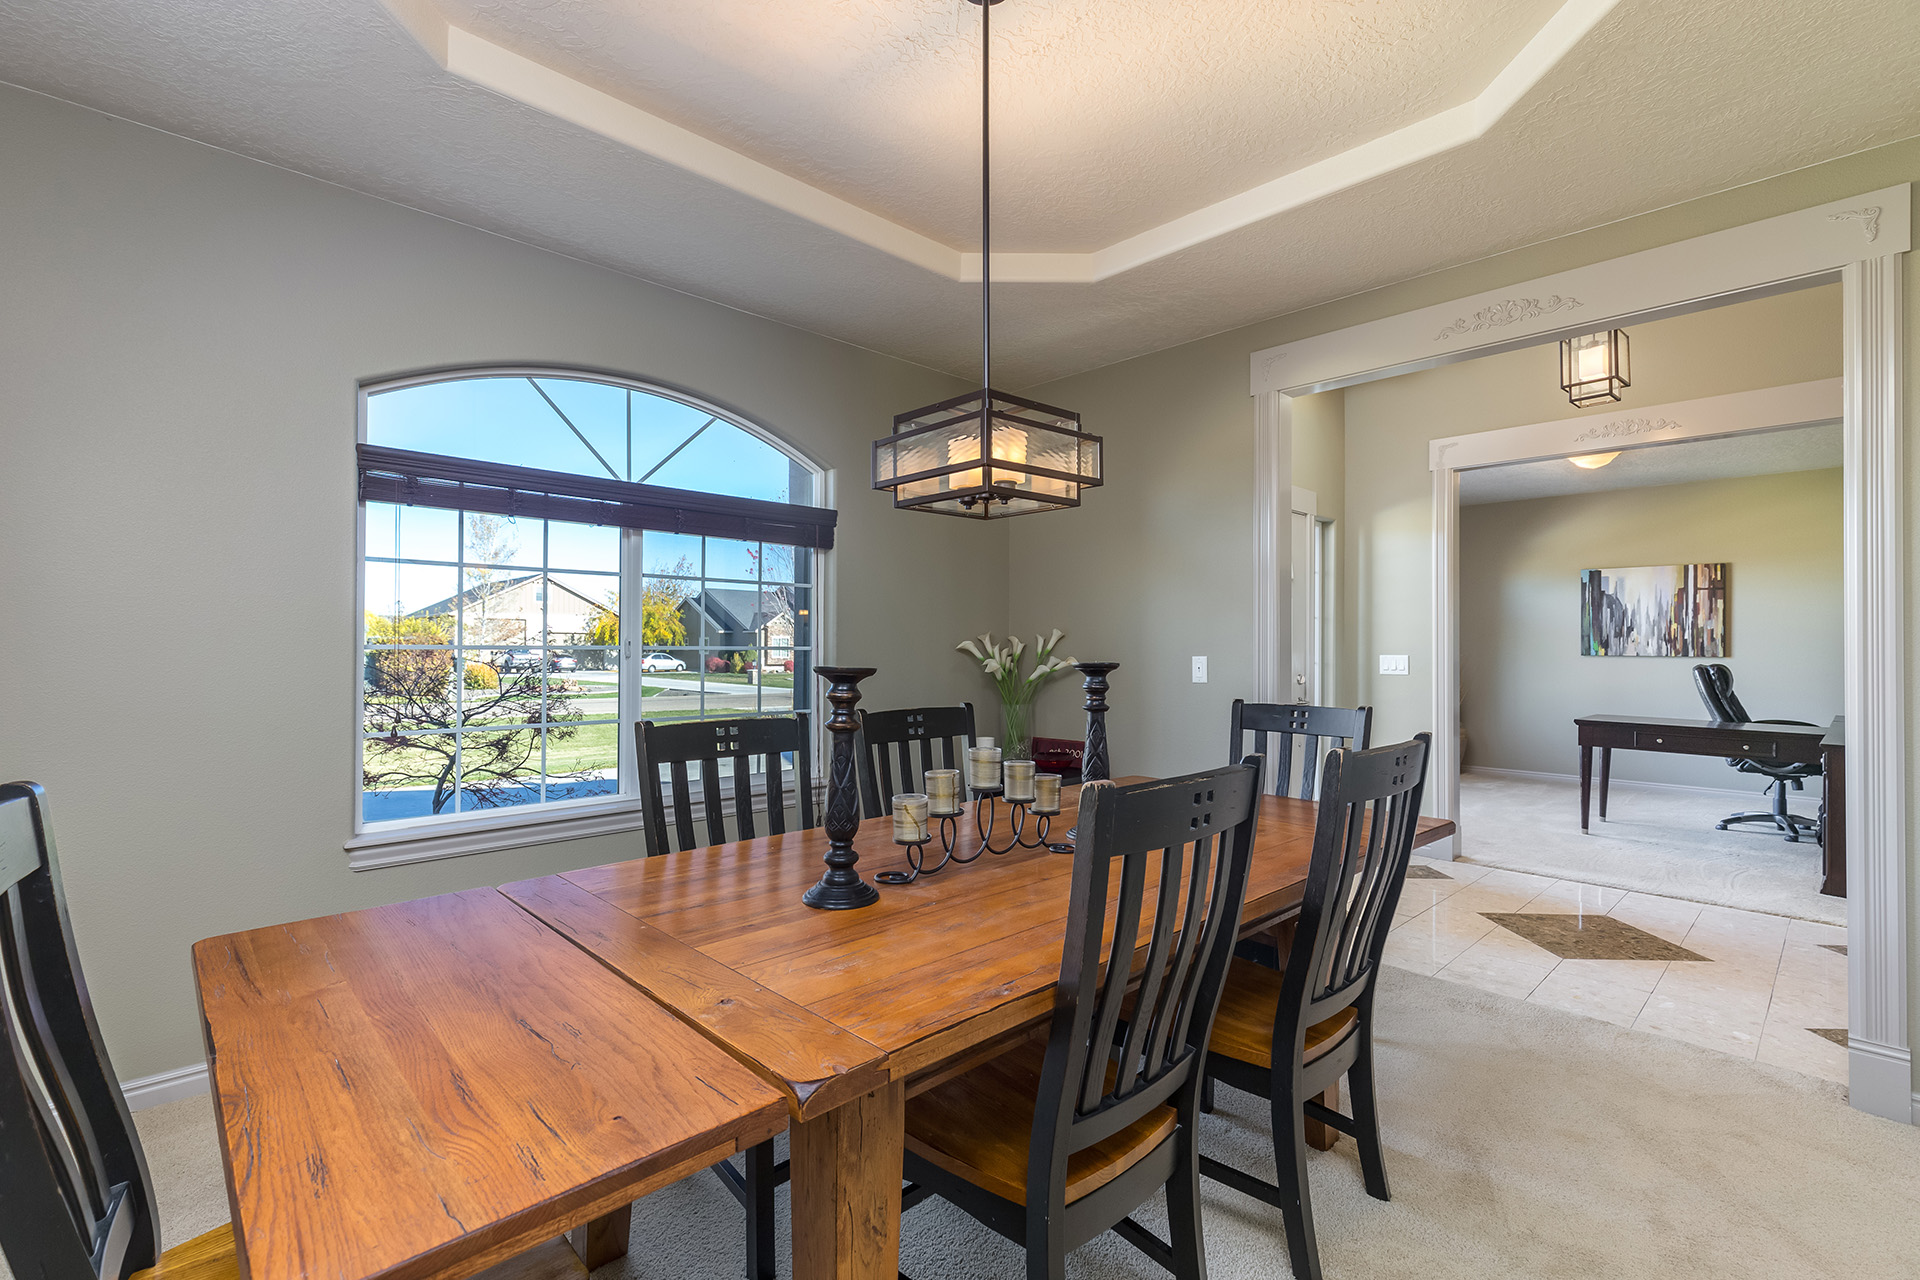 Dining_Room_Real_Estate_Photography5